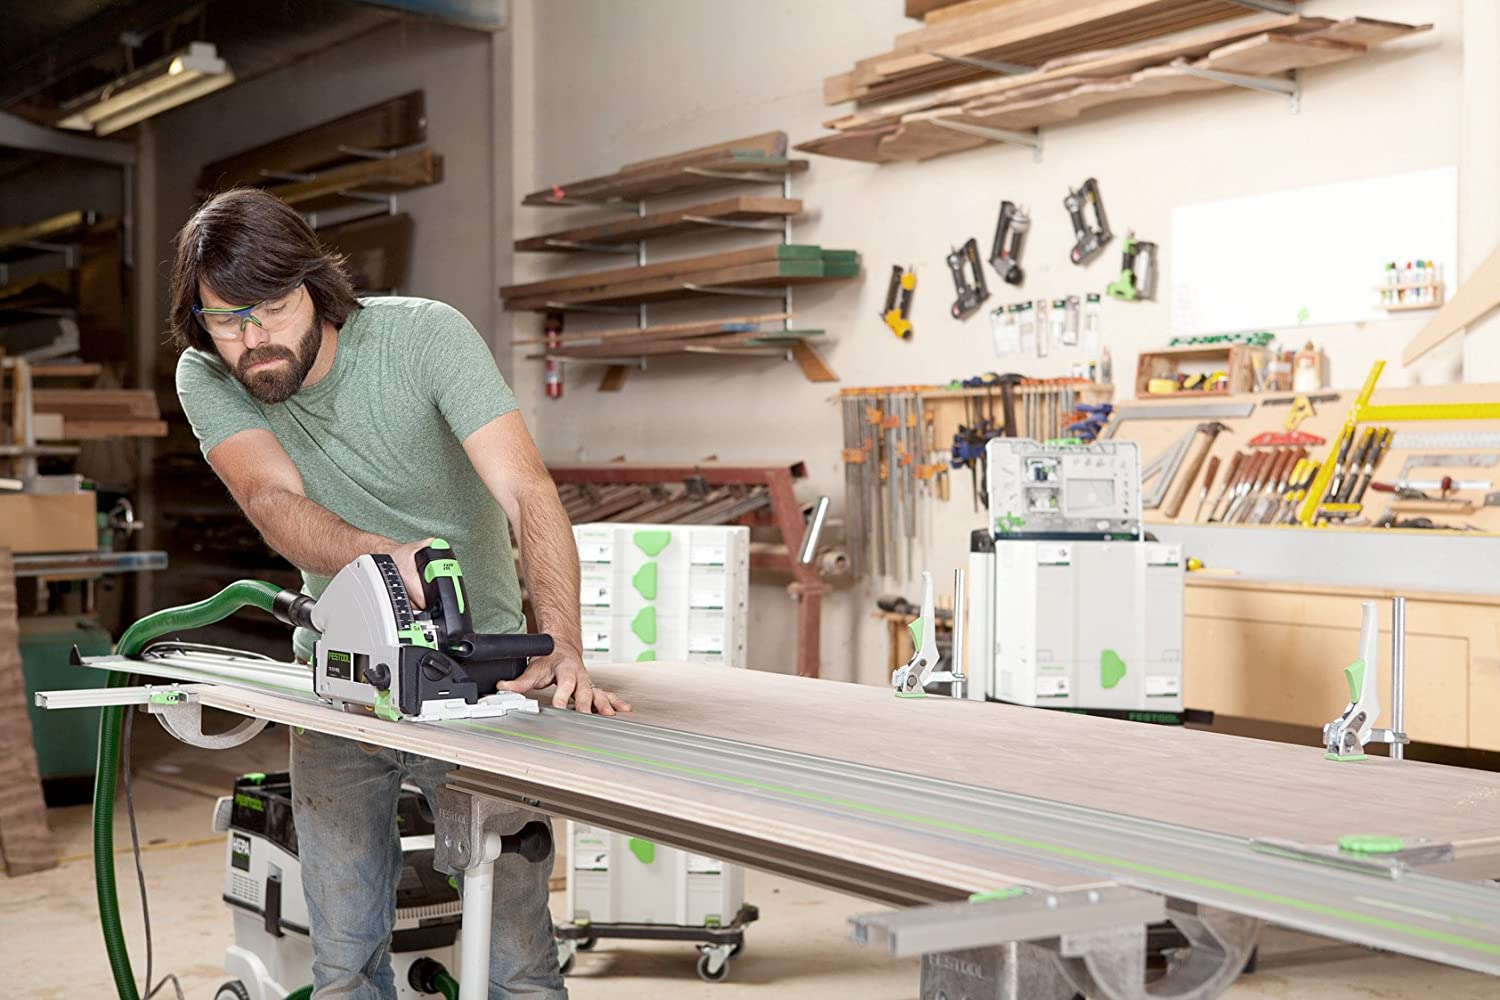 demonstration of dust collection on Festool TS 55